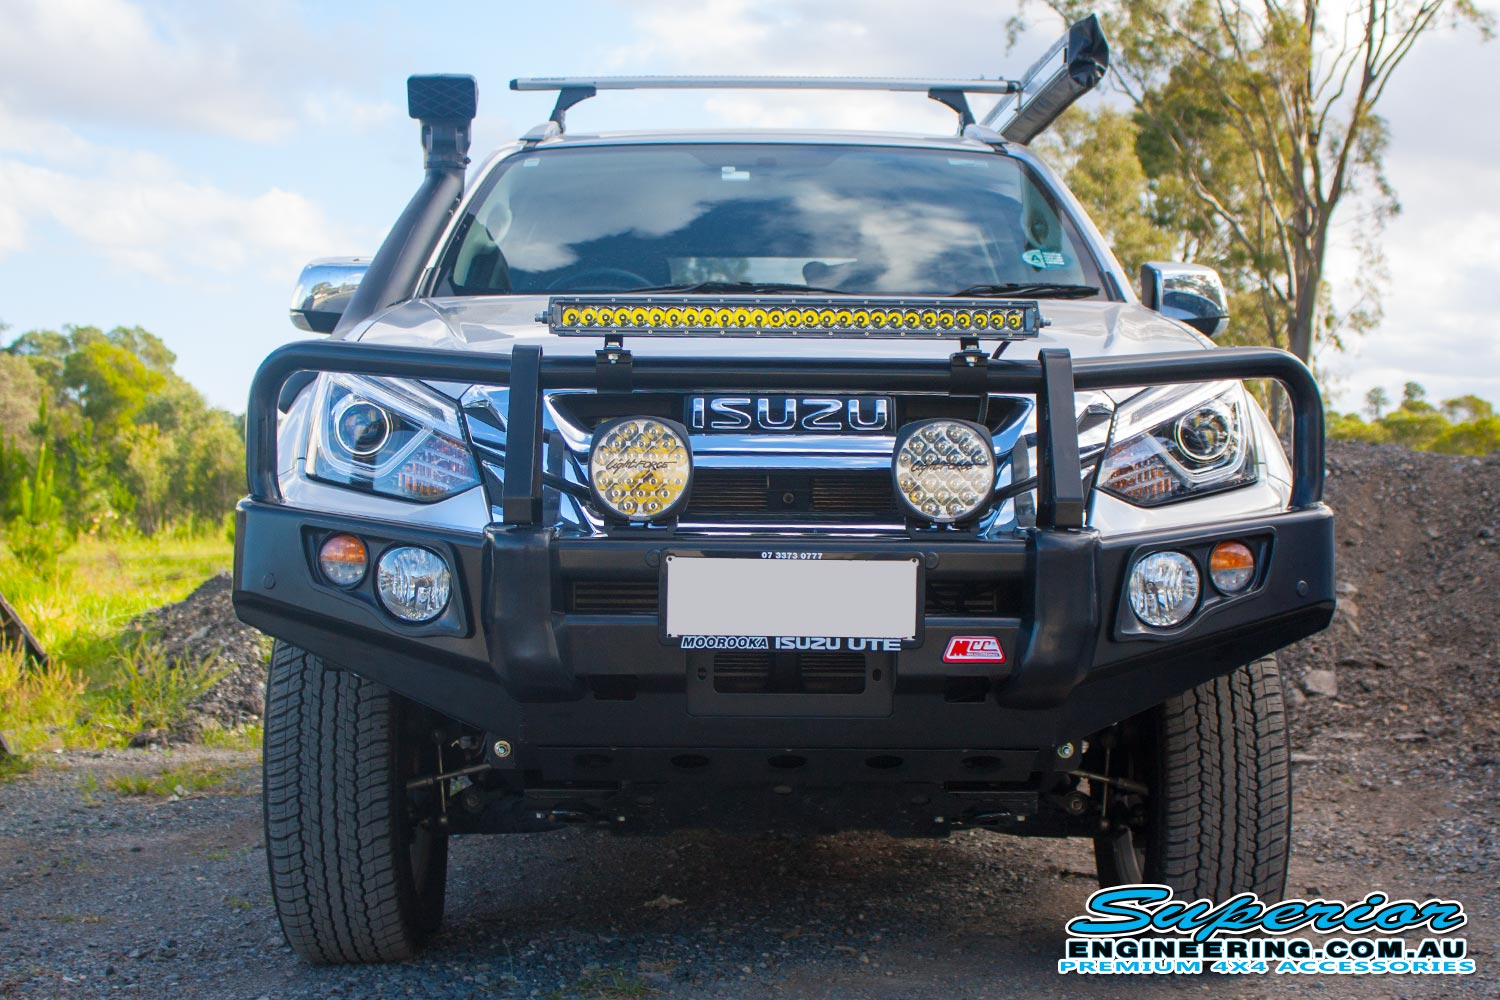 Front view of a silver Isuzu MU-X wagon fitted with a range of Lightforce, Ironman, MCC4x4, TJM 4x4 accessories and a heavy duty 45mm EFS lift kit